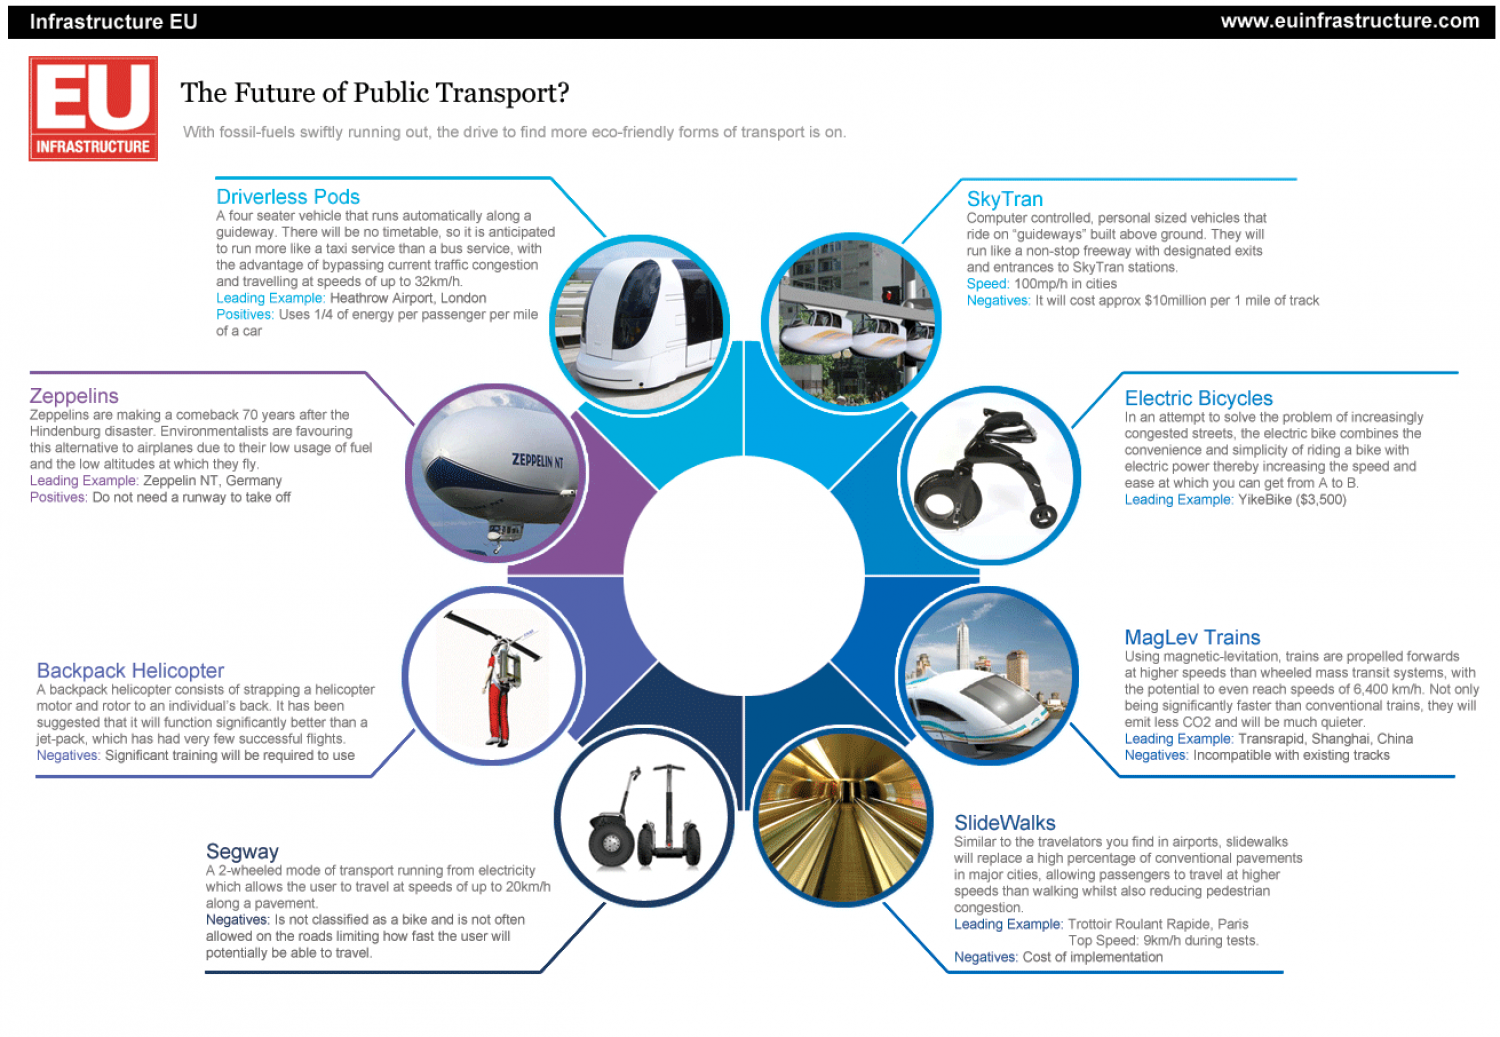 The Future of Public Transport Infographic